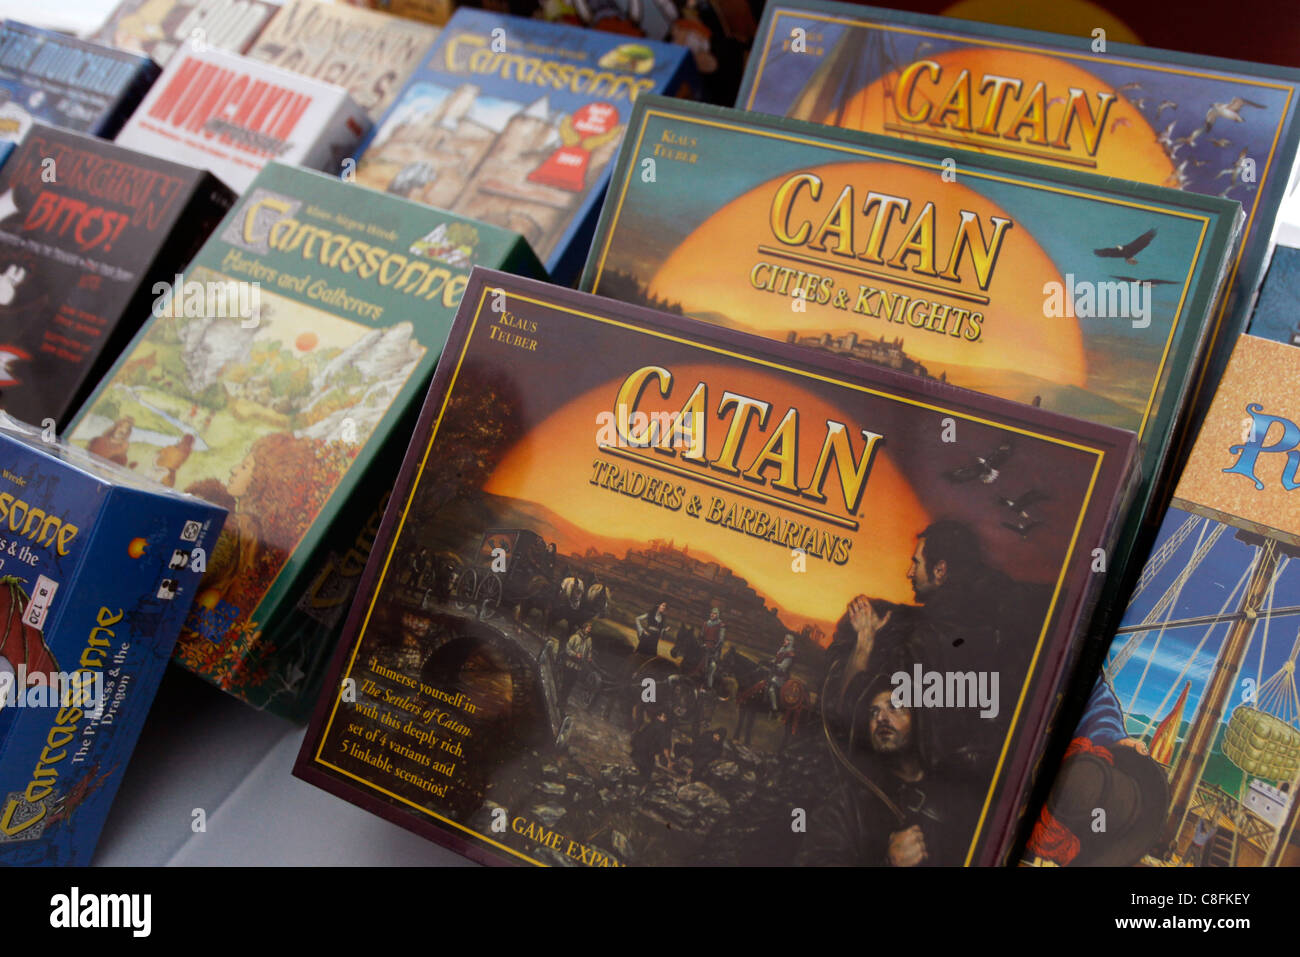 The Settlers of Catan is a multiplayer board game for sale in a game shop - Stock Image